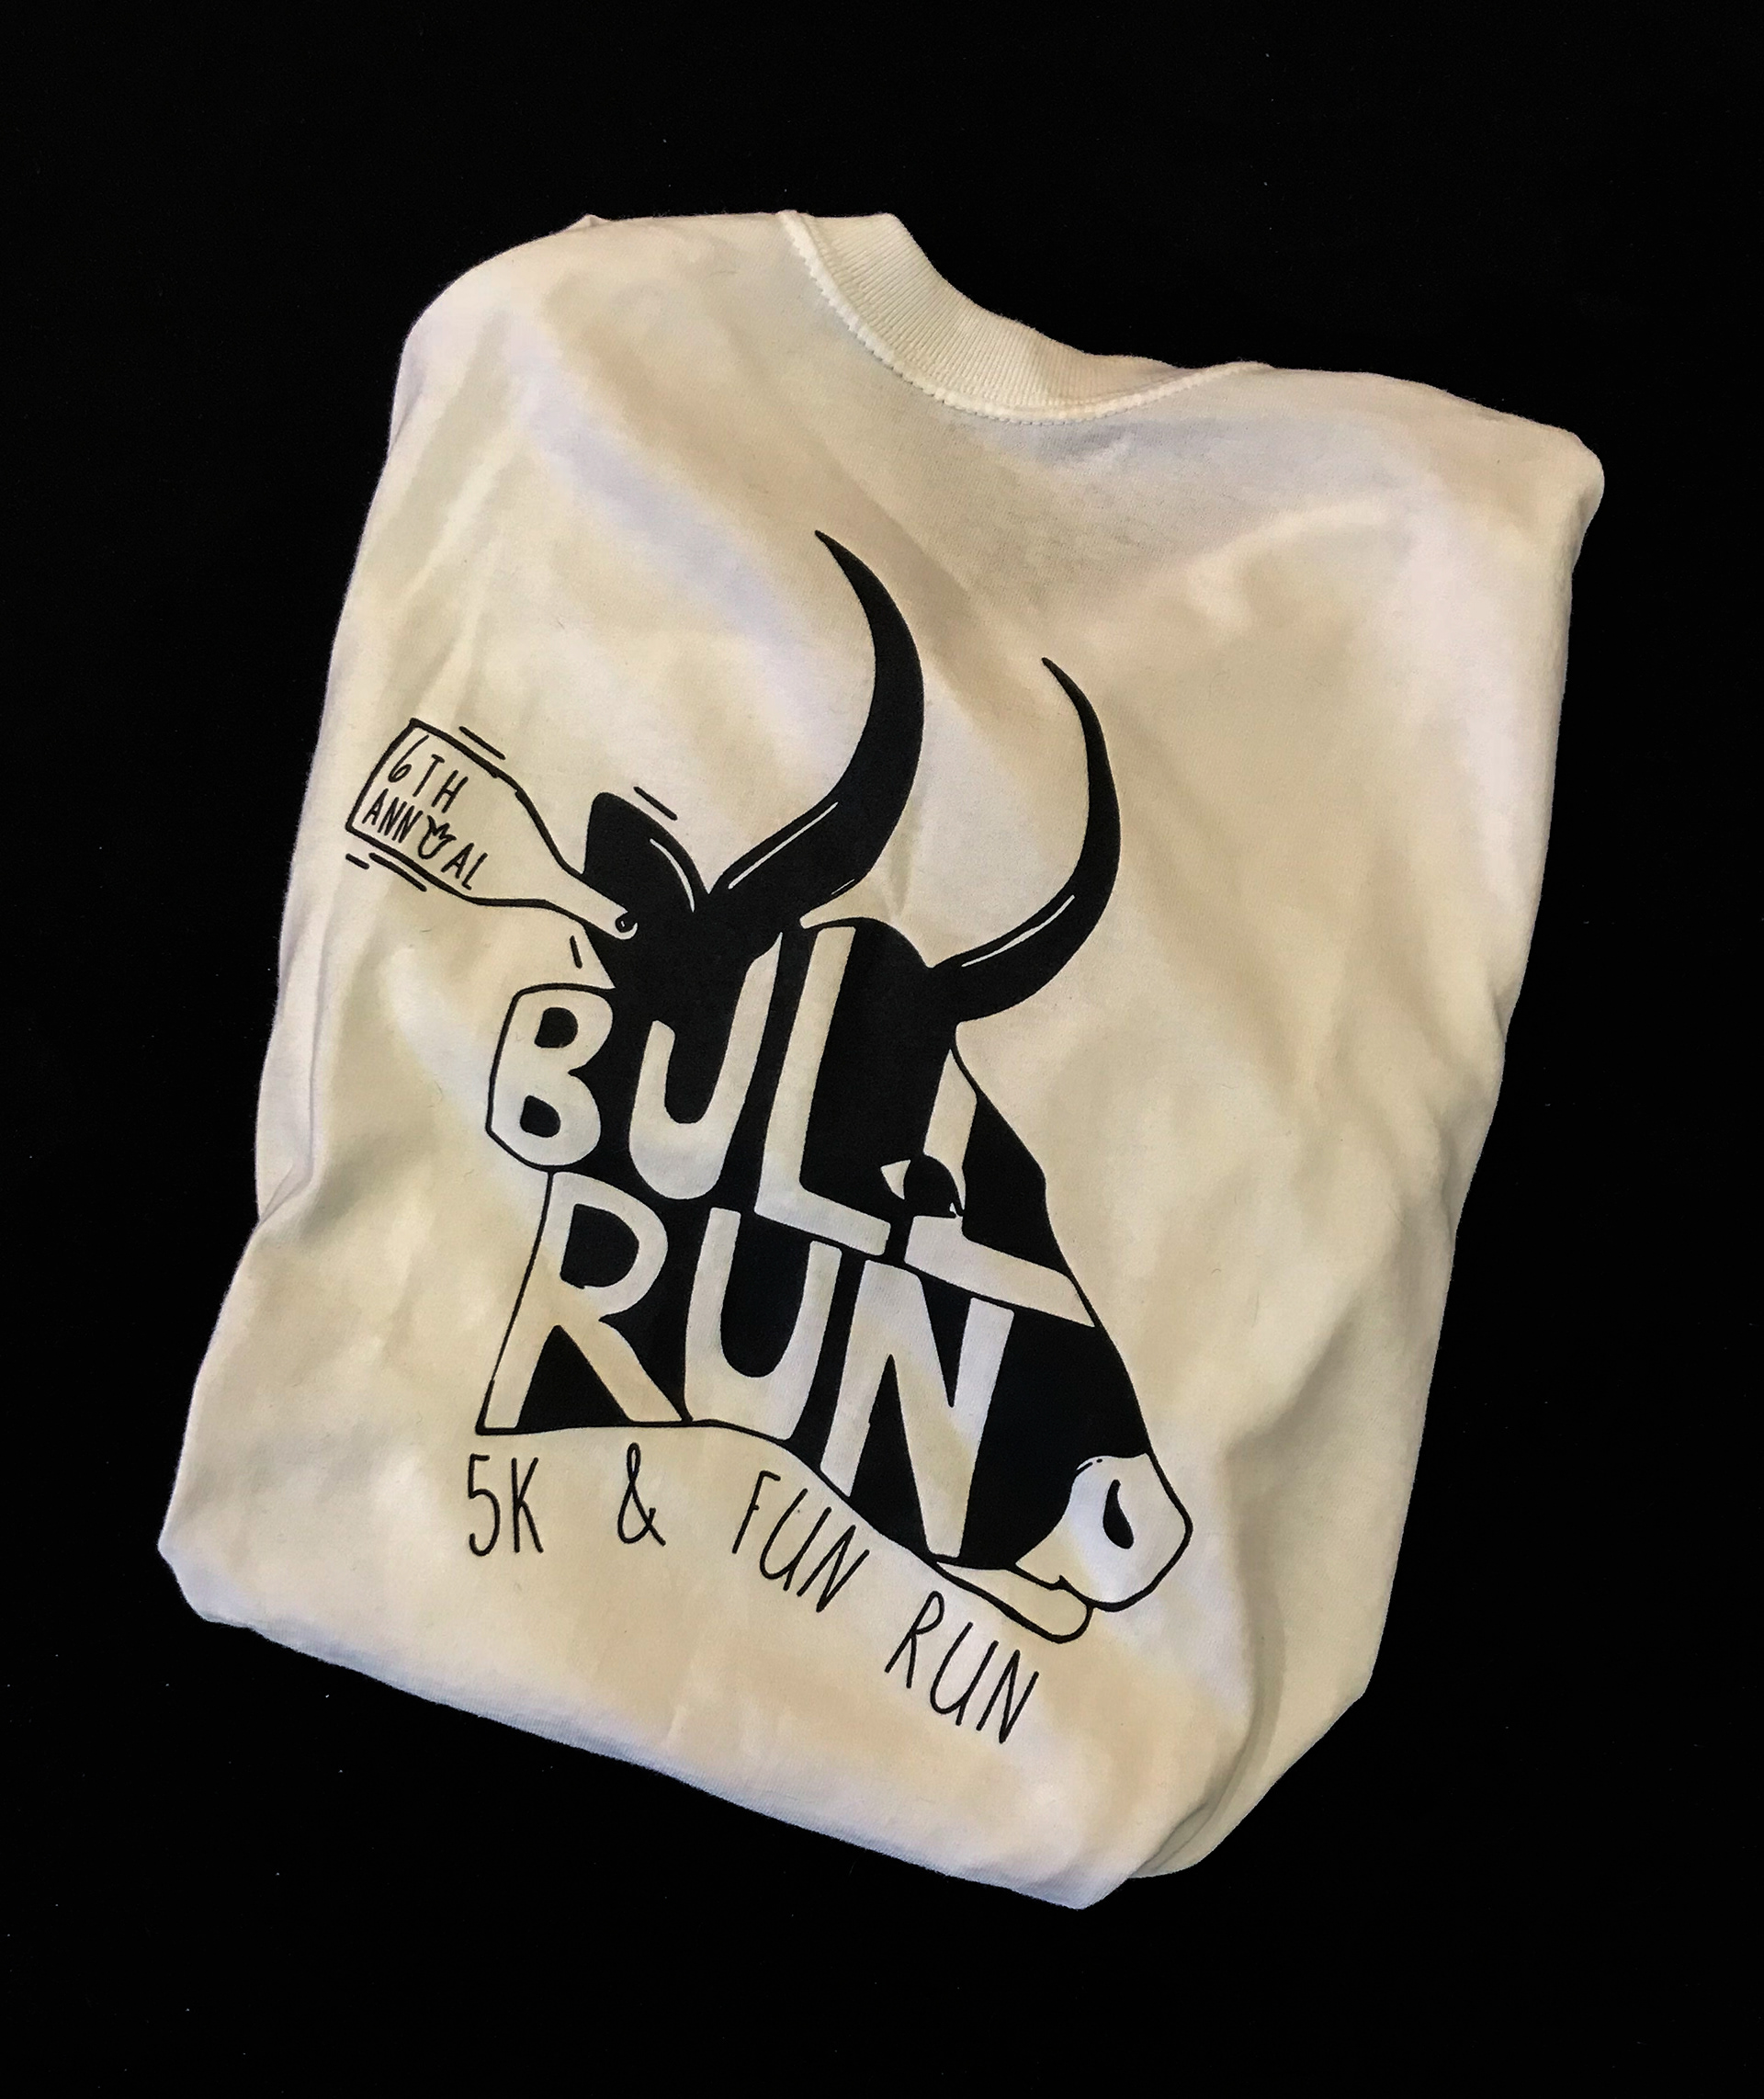 Kelly Coy Bull Run T Shirt Design